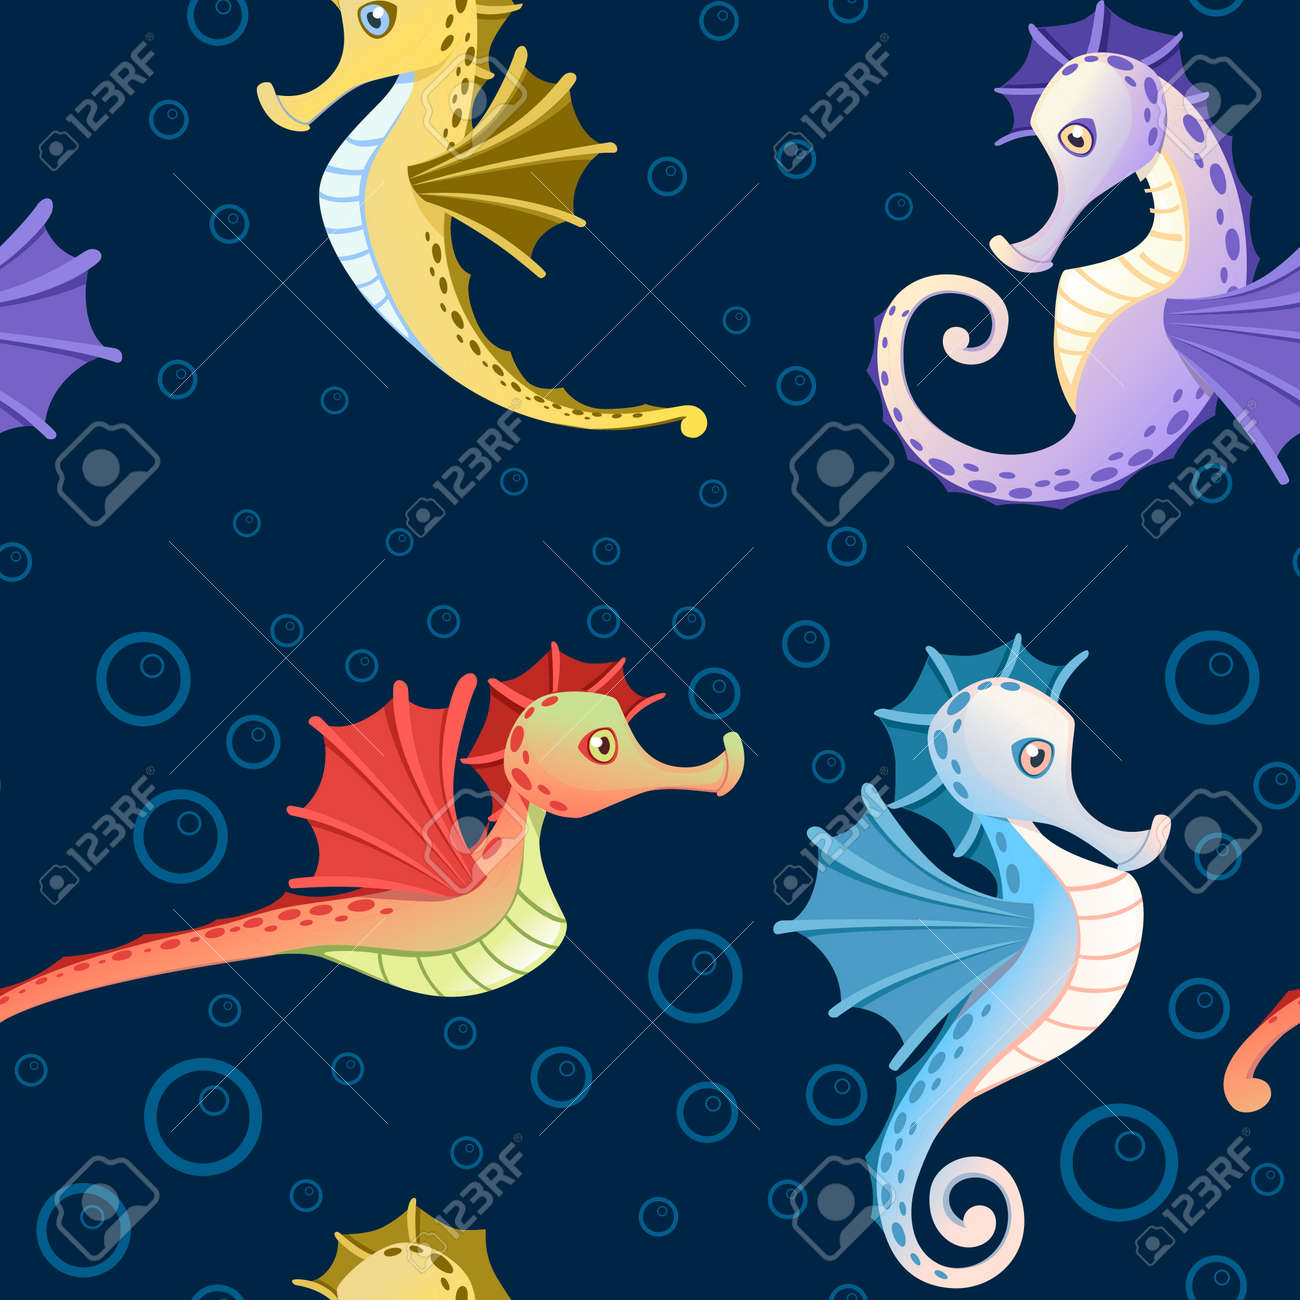 Seamless Pattern Of Sea Horses With Different Skin Colors And Royalty Free Cliparts Vectors And Stock Illustration Image 139629263